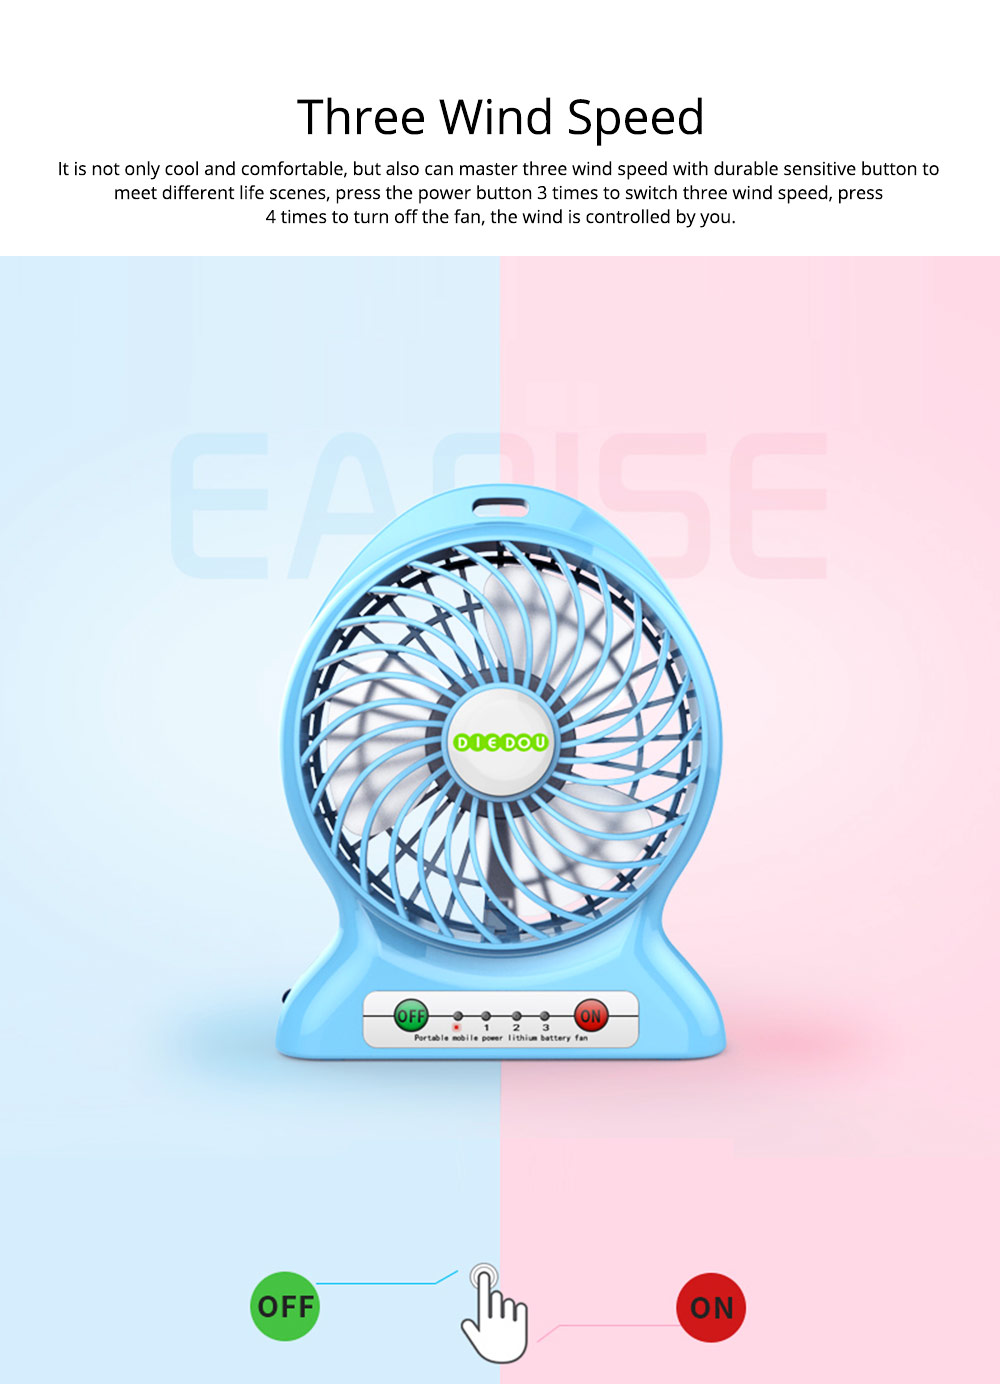 Silent USB Mini Fan with Three Wind Speed, Outdoor Portable Hand Held Mini Fan with Large Capacity Charging 2